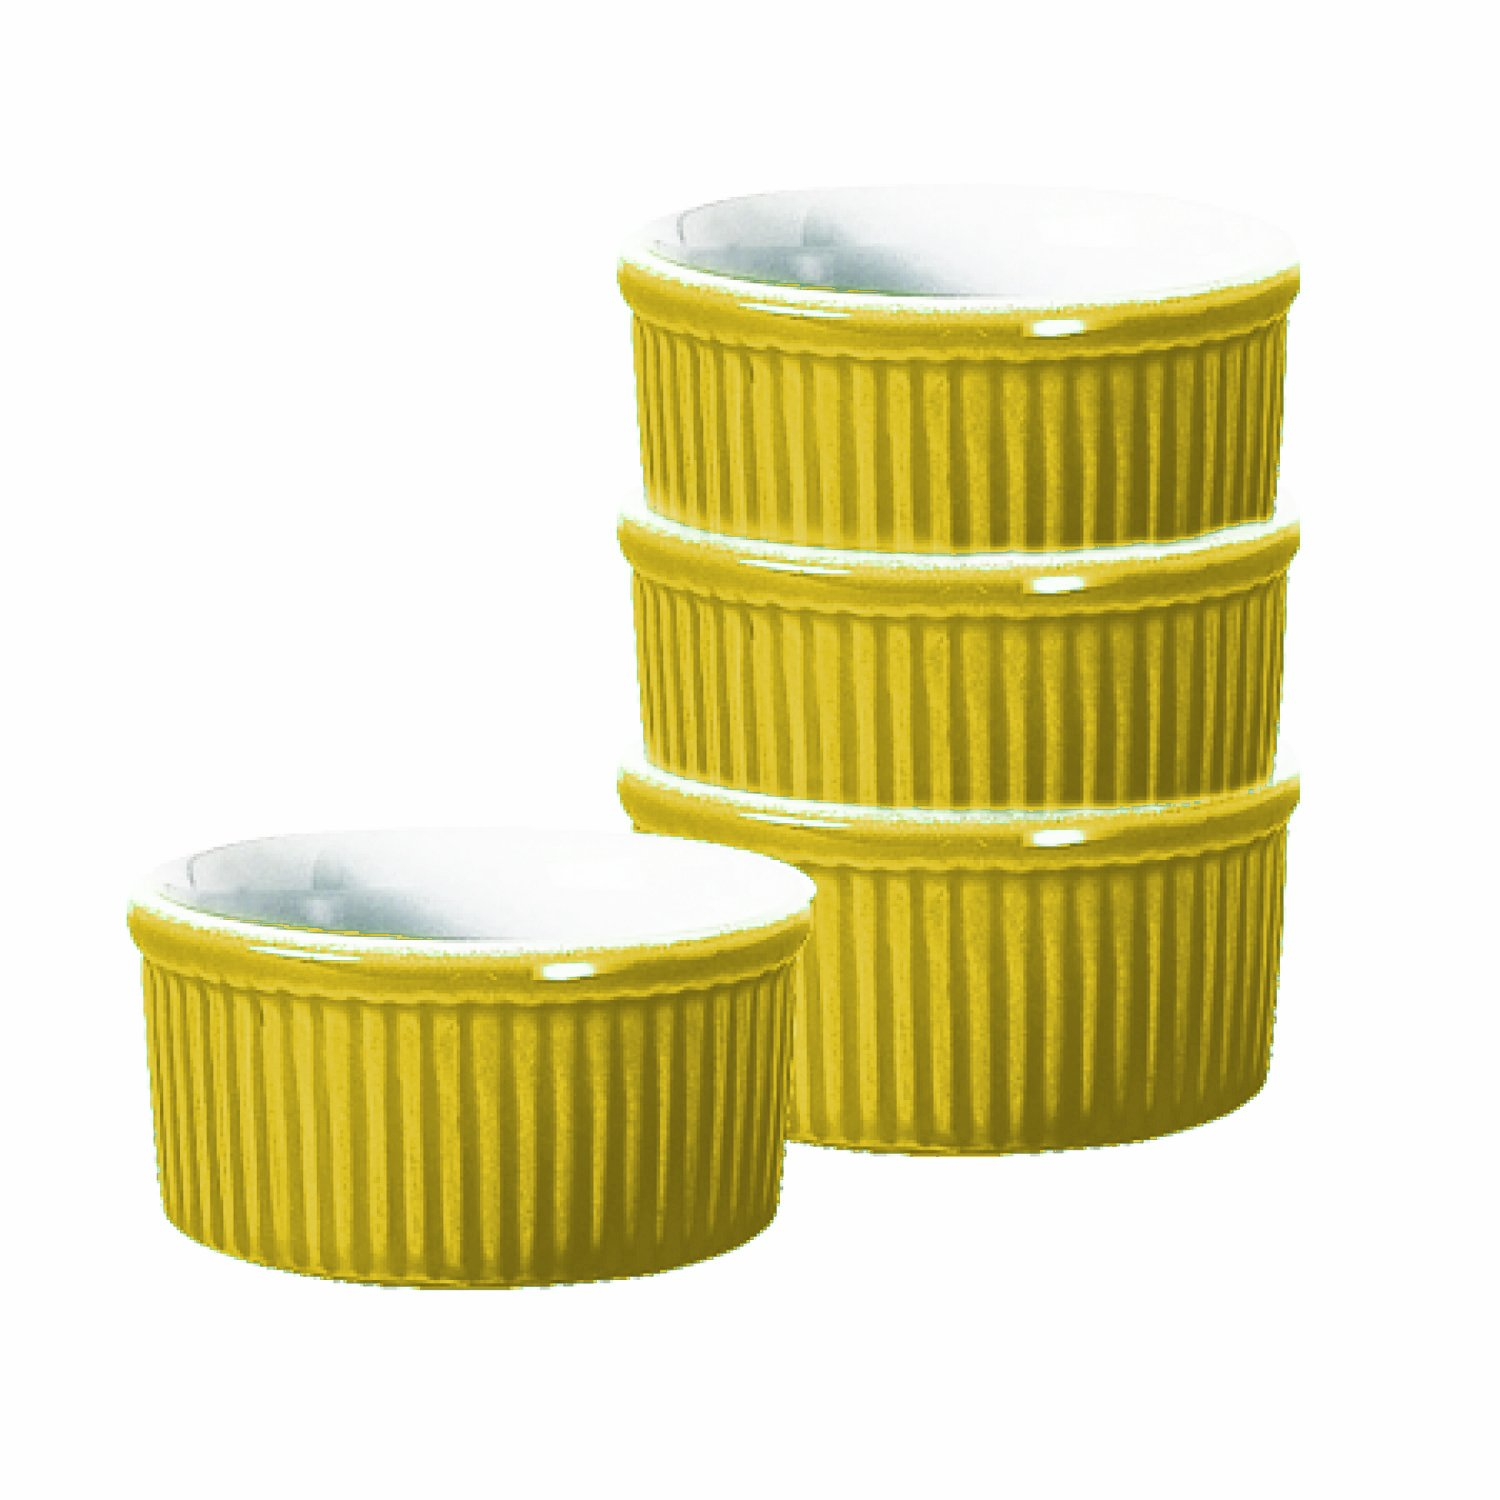 Emile Henry 6-Ounce Ramekin, Set of 4, Citron Yellow